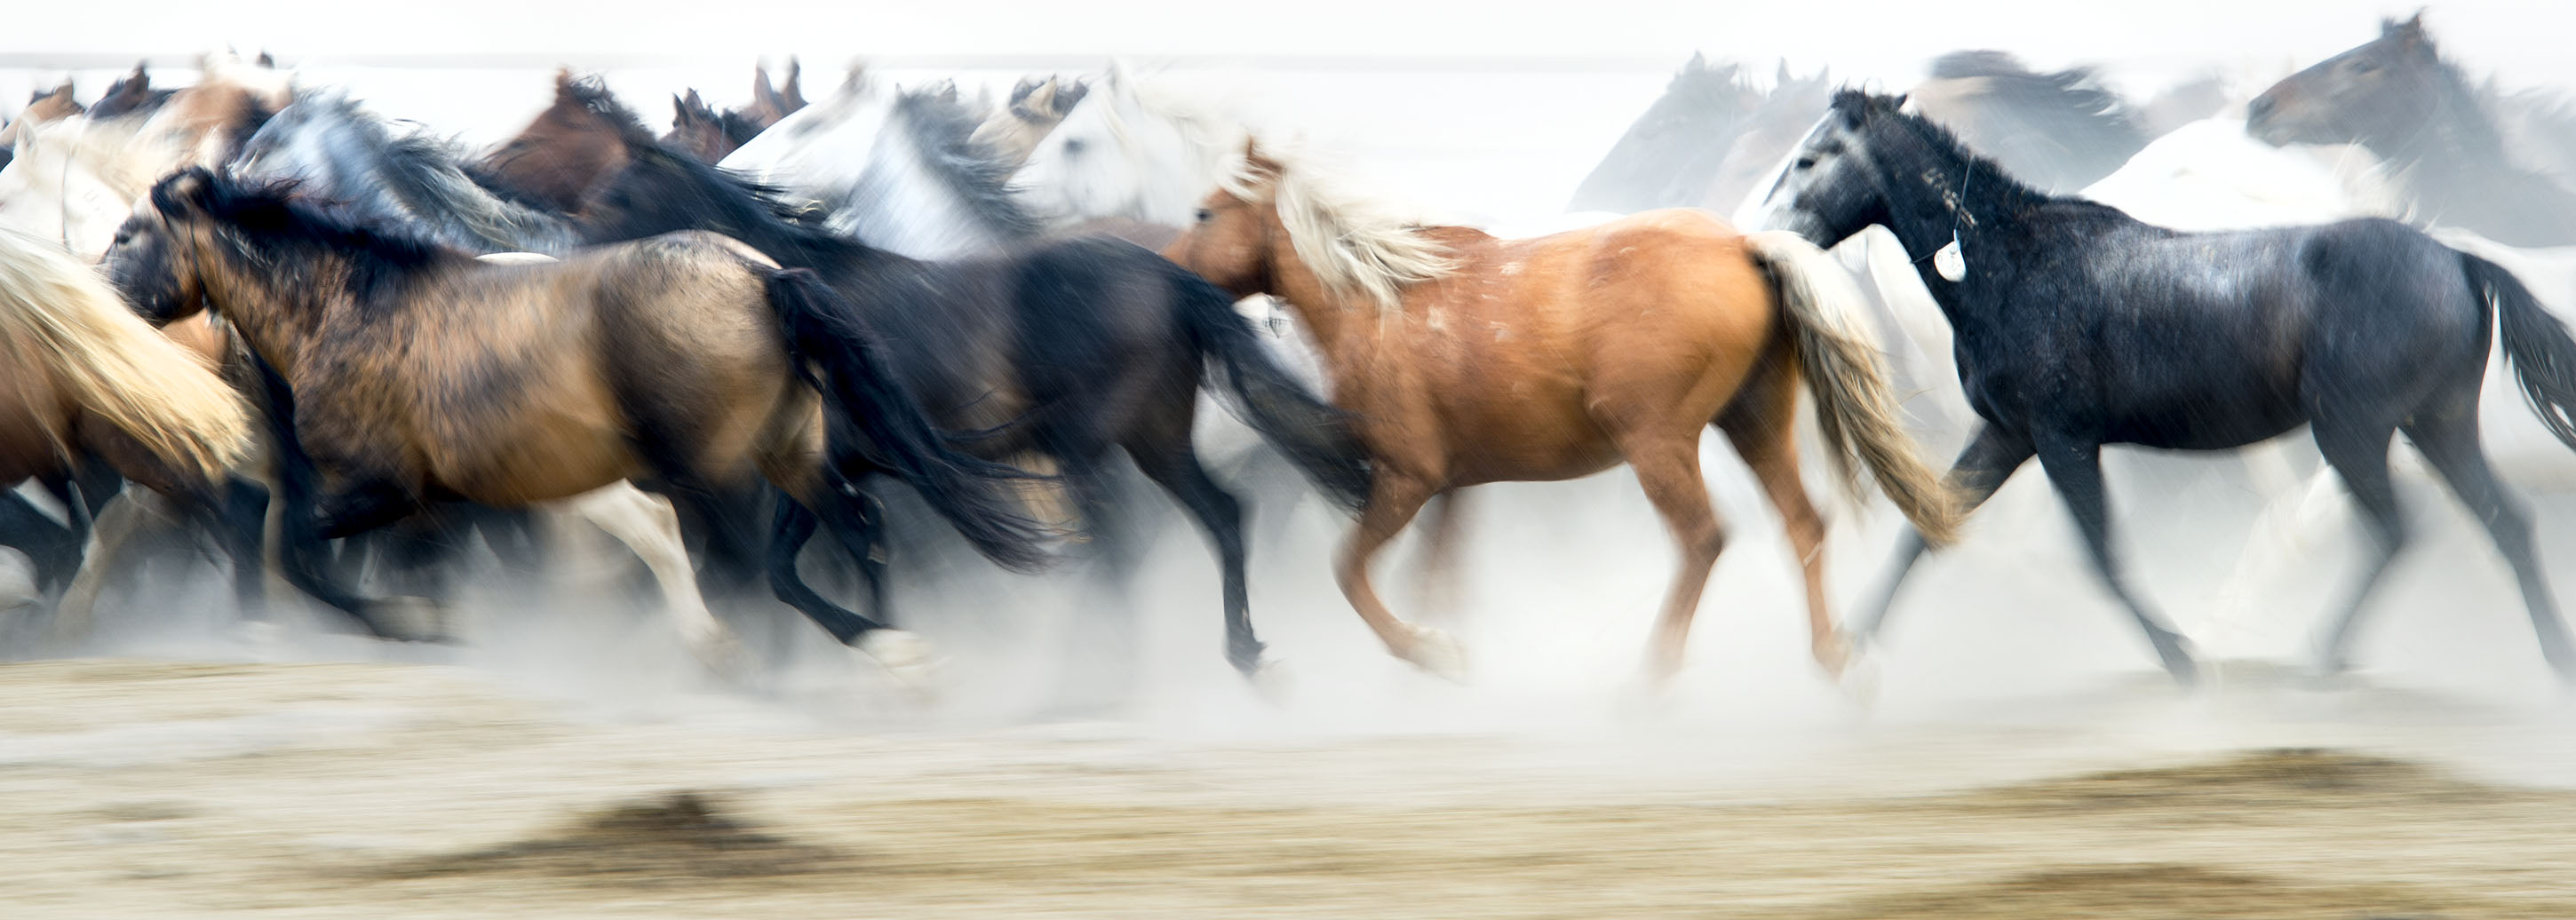 (Steve Griffin  | Tribune file photo)   Wild horses are cared for in the BLM's new off-range contract wild horse corral, located on a 32-acre private ranch in Axtell, Utah Monday, September 14, 2015.  Over 500 wild horses currently are housed at the facility, including the 170 wild horses associated with the Wheeler Pass Herd Management Area Emergency Gather near the Cold Creek area of Southern Nevada.